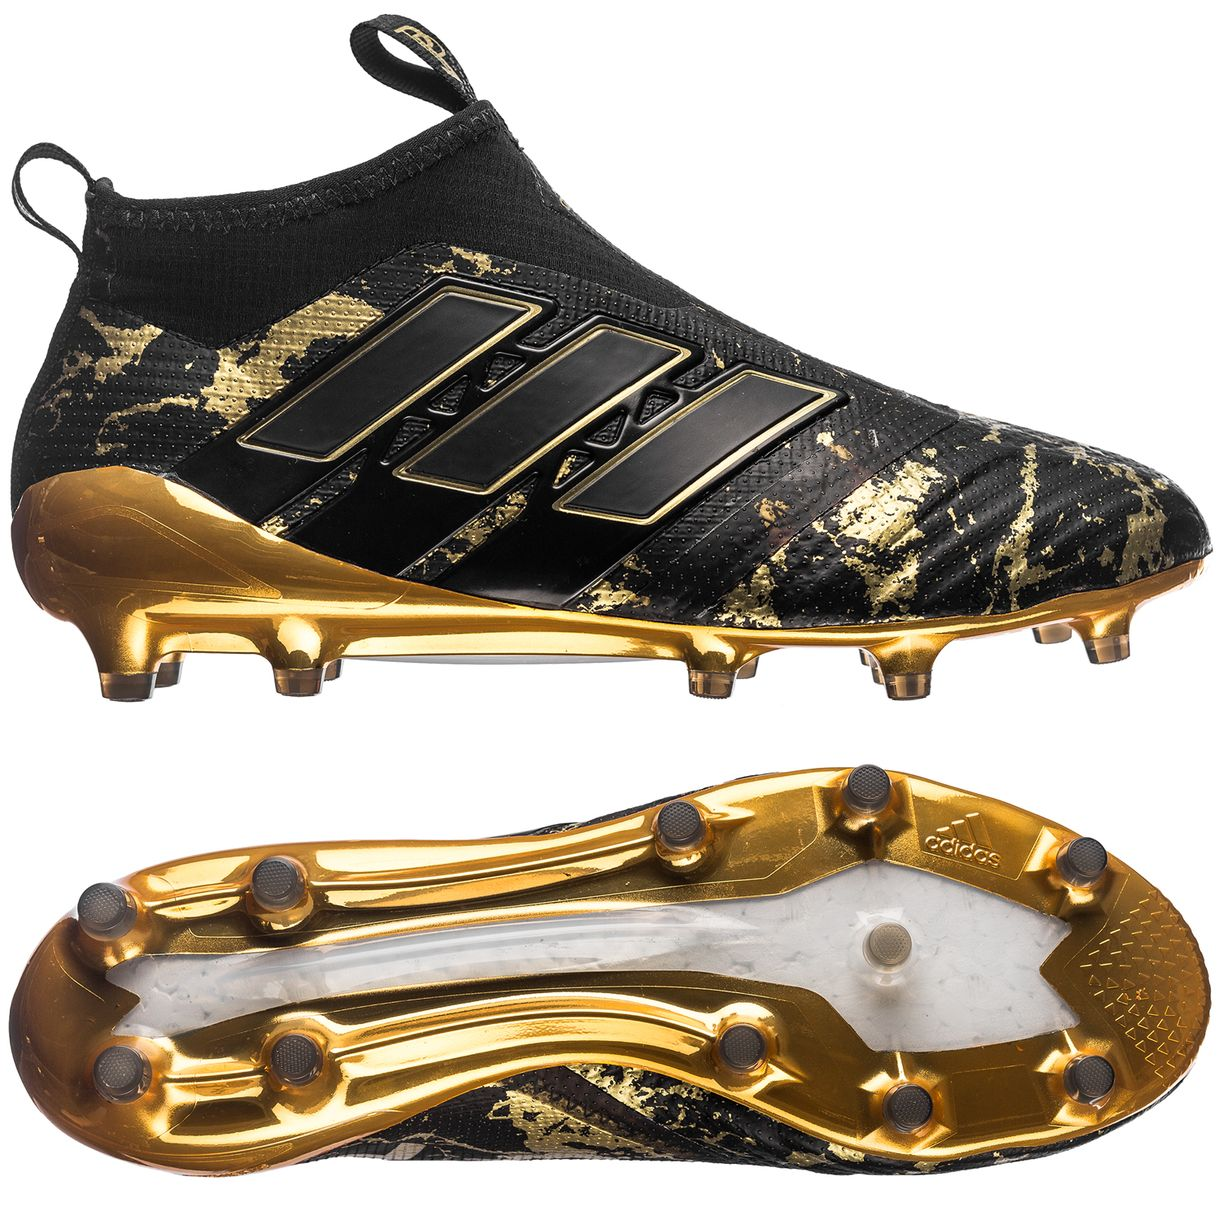 Adidas Pp Ace 17 Purecontrol Firm Ground Boots Core